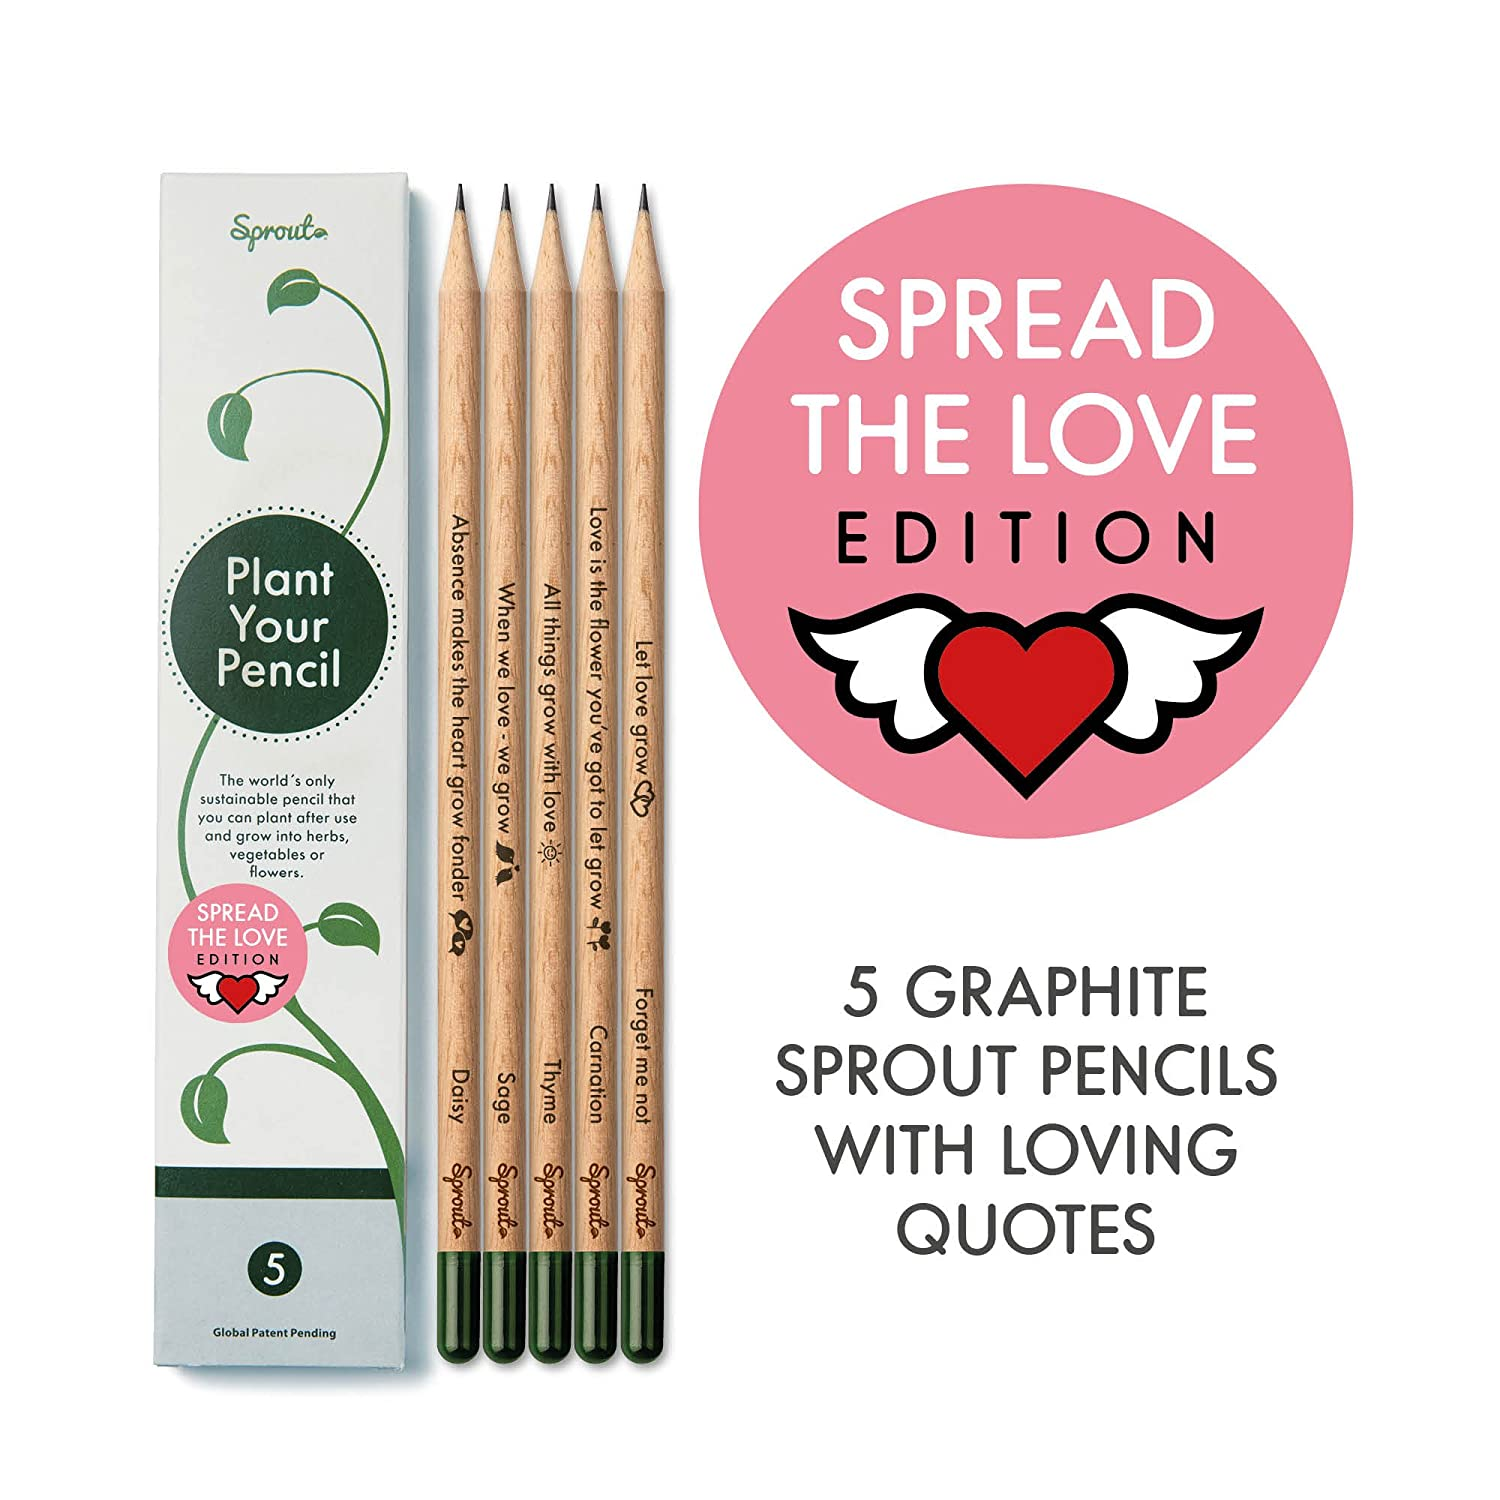 Amazon.com : Sprout Pencils Spread the Love Edition Box | 5 ...